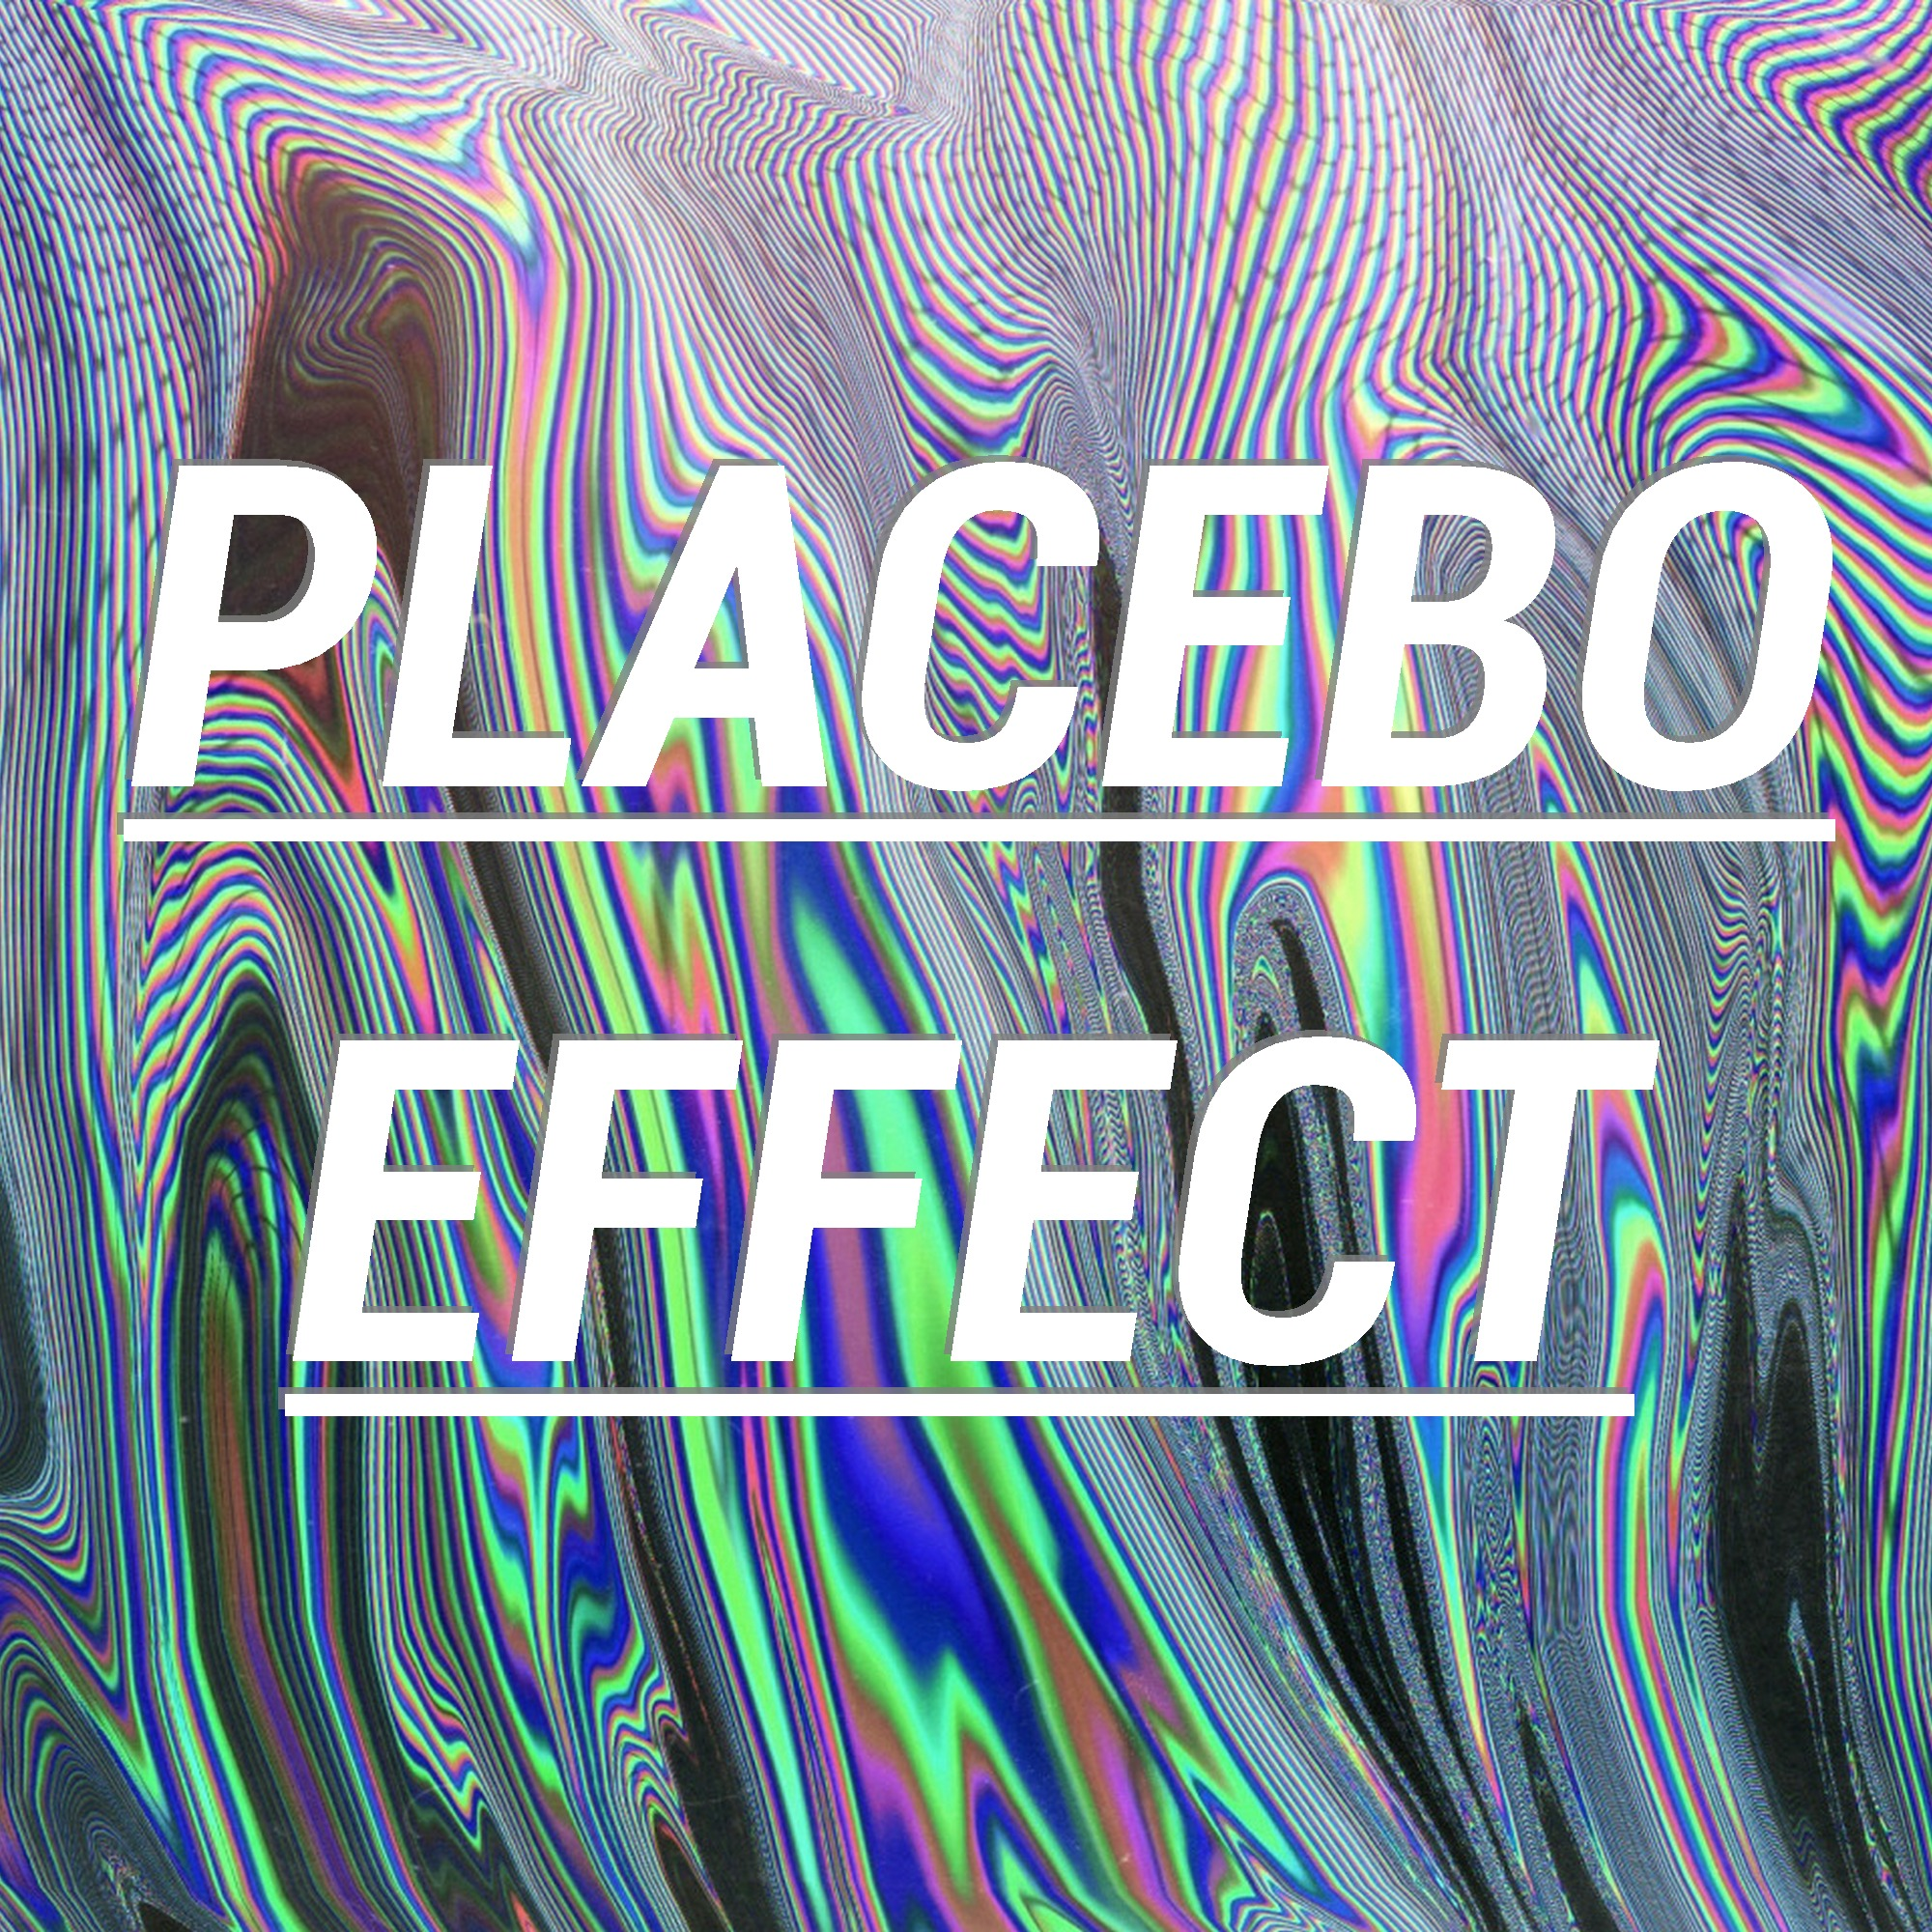 reflection on placebo effect essay